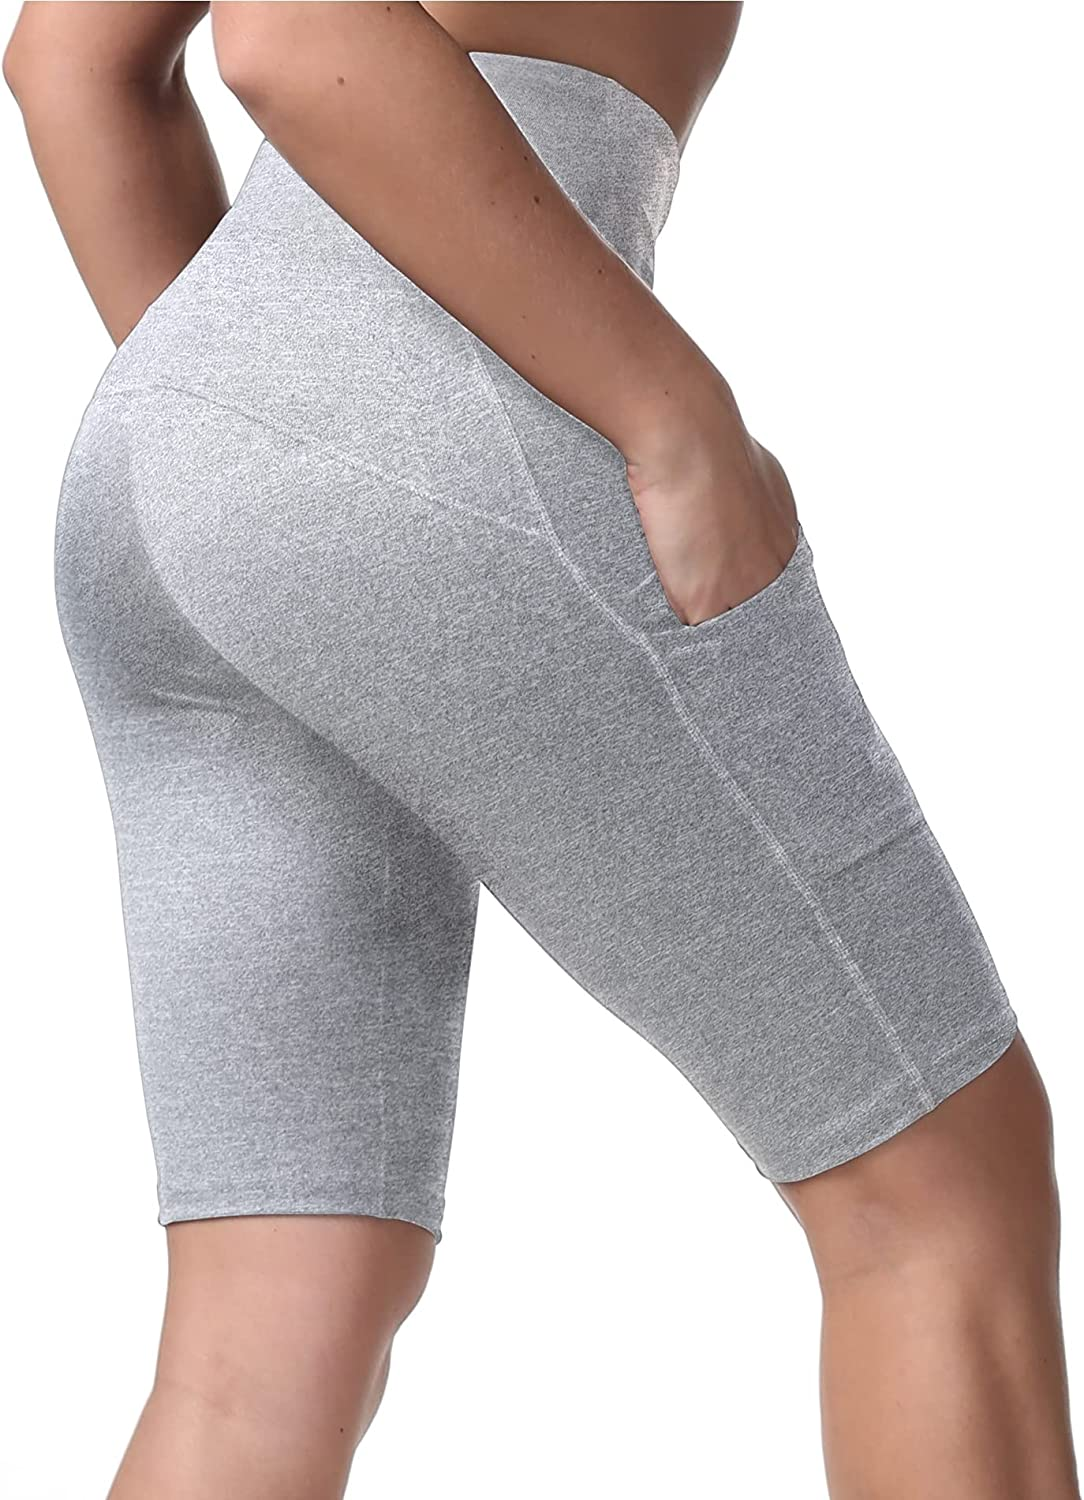 KUTAPU High Waist Biker Workout Sales for sale Yoga Wholesale 2 Shorts Pockets Non with